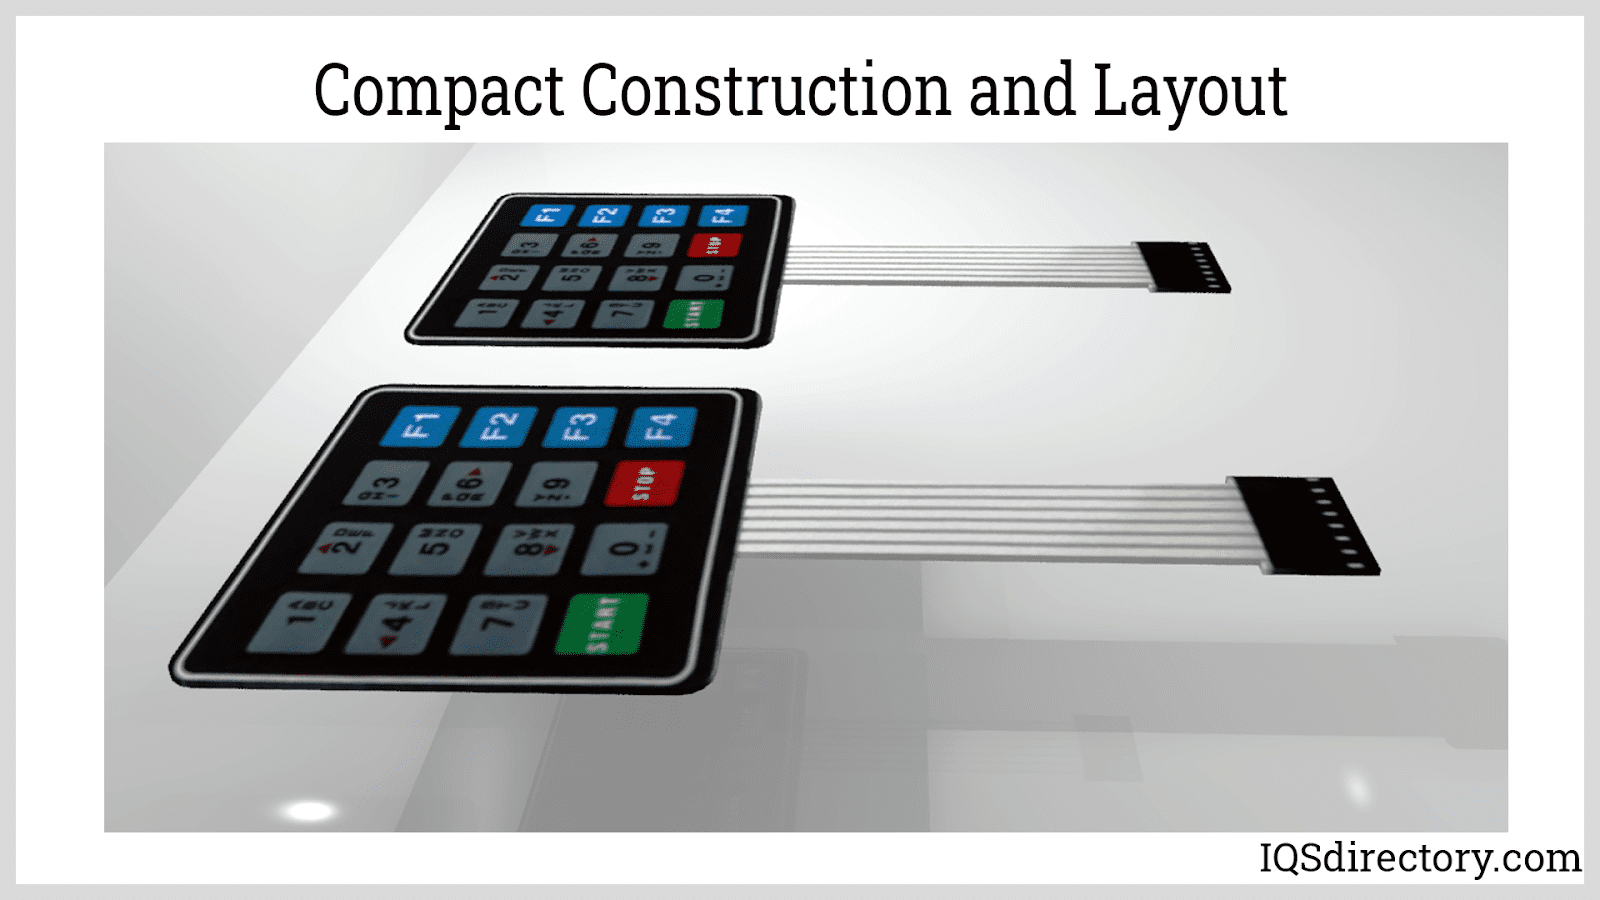 Compact Construction and Layout